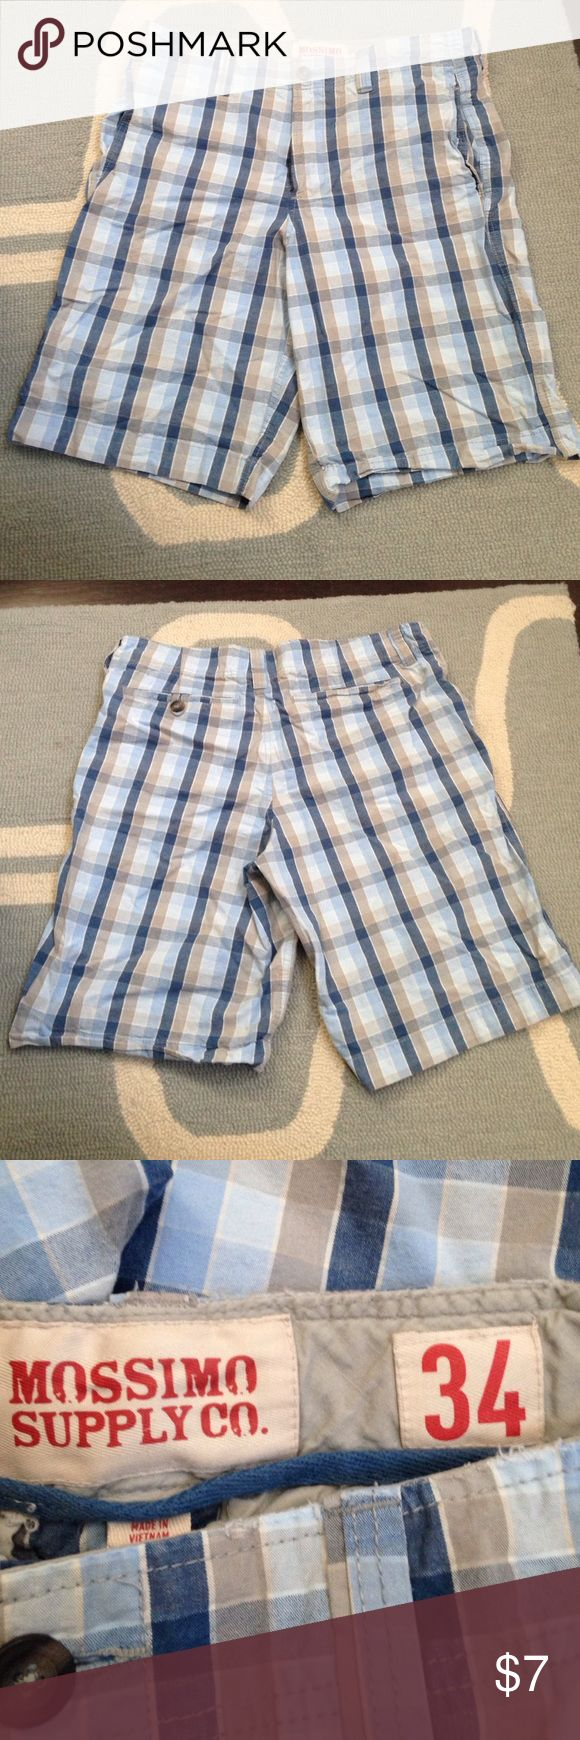 Men's plaid shorts- WILL BUNDLE! Men's Mossimo plaid shorts, approx. knee length. Mossimo Supply Co. Shorts Flat Front